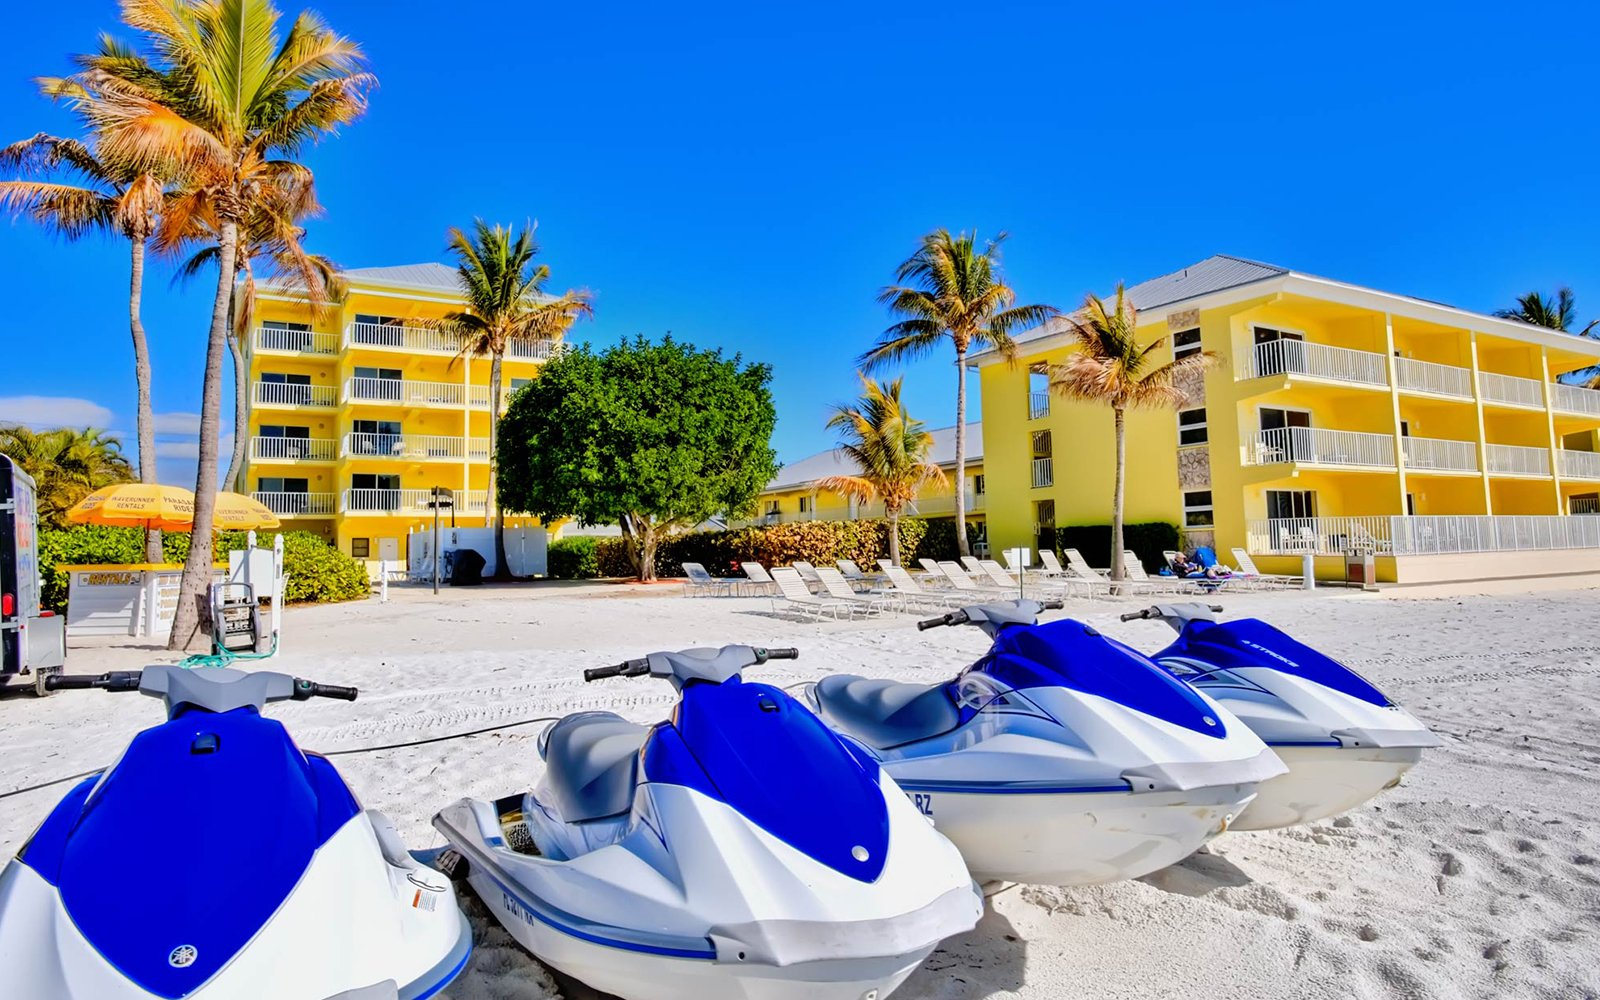 Our Gulf-front resort features water sports, pools, and other amenities for your Fort Myers Beach stay.